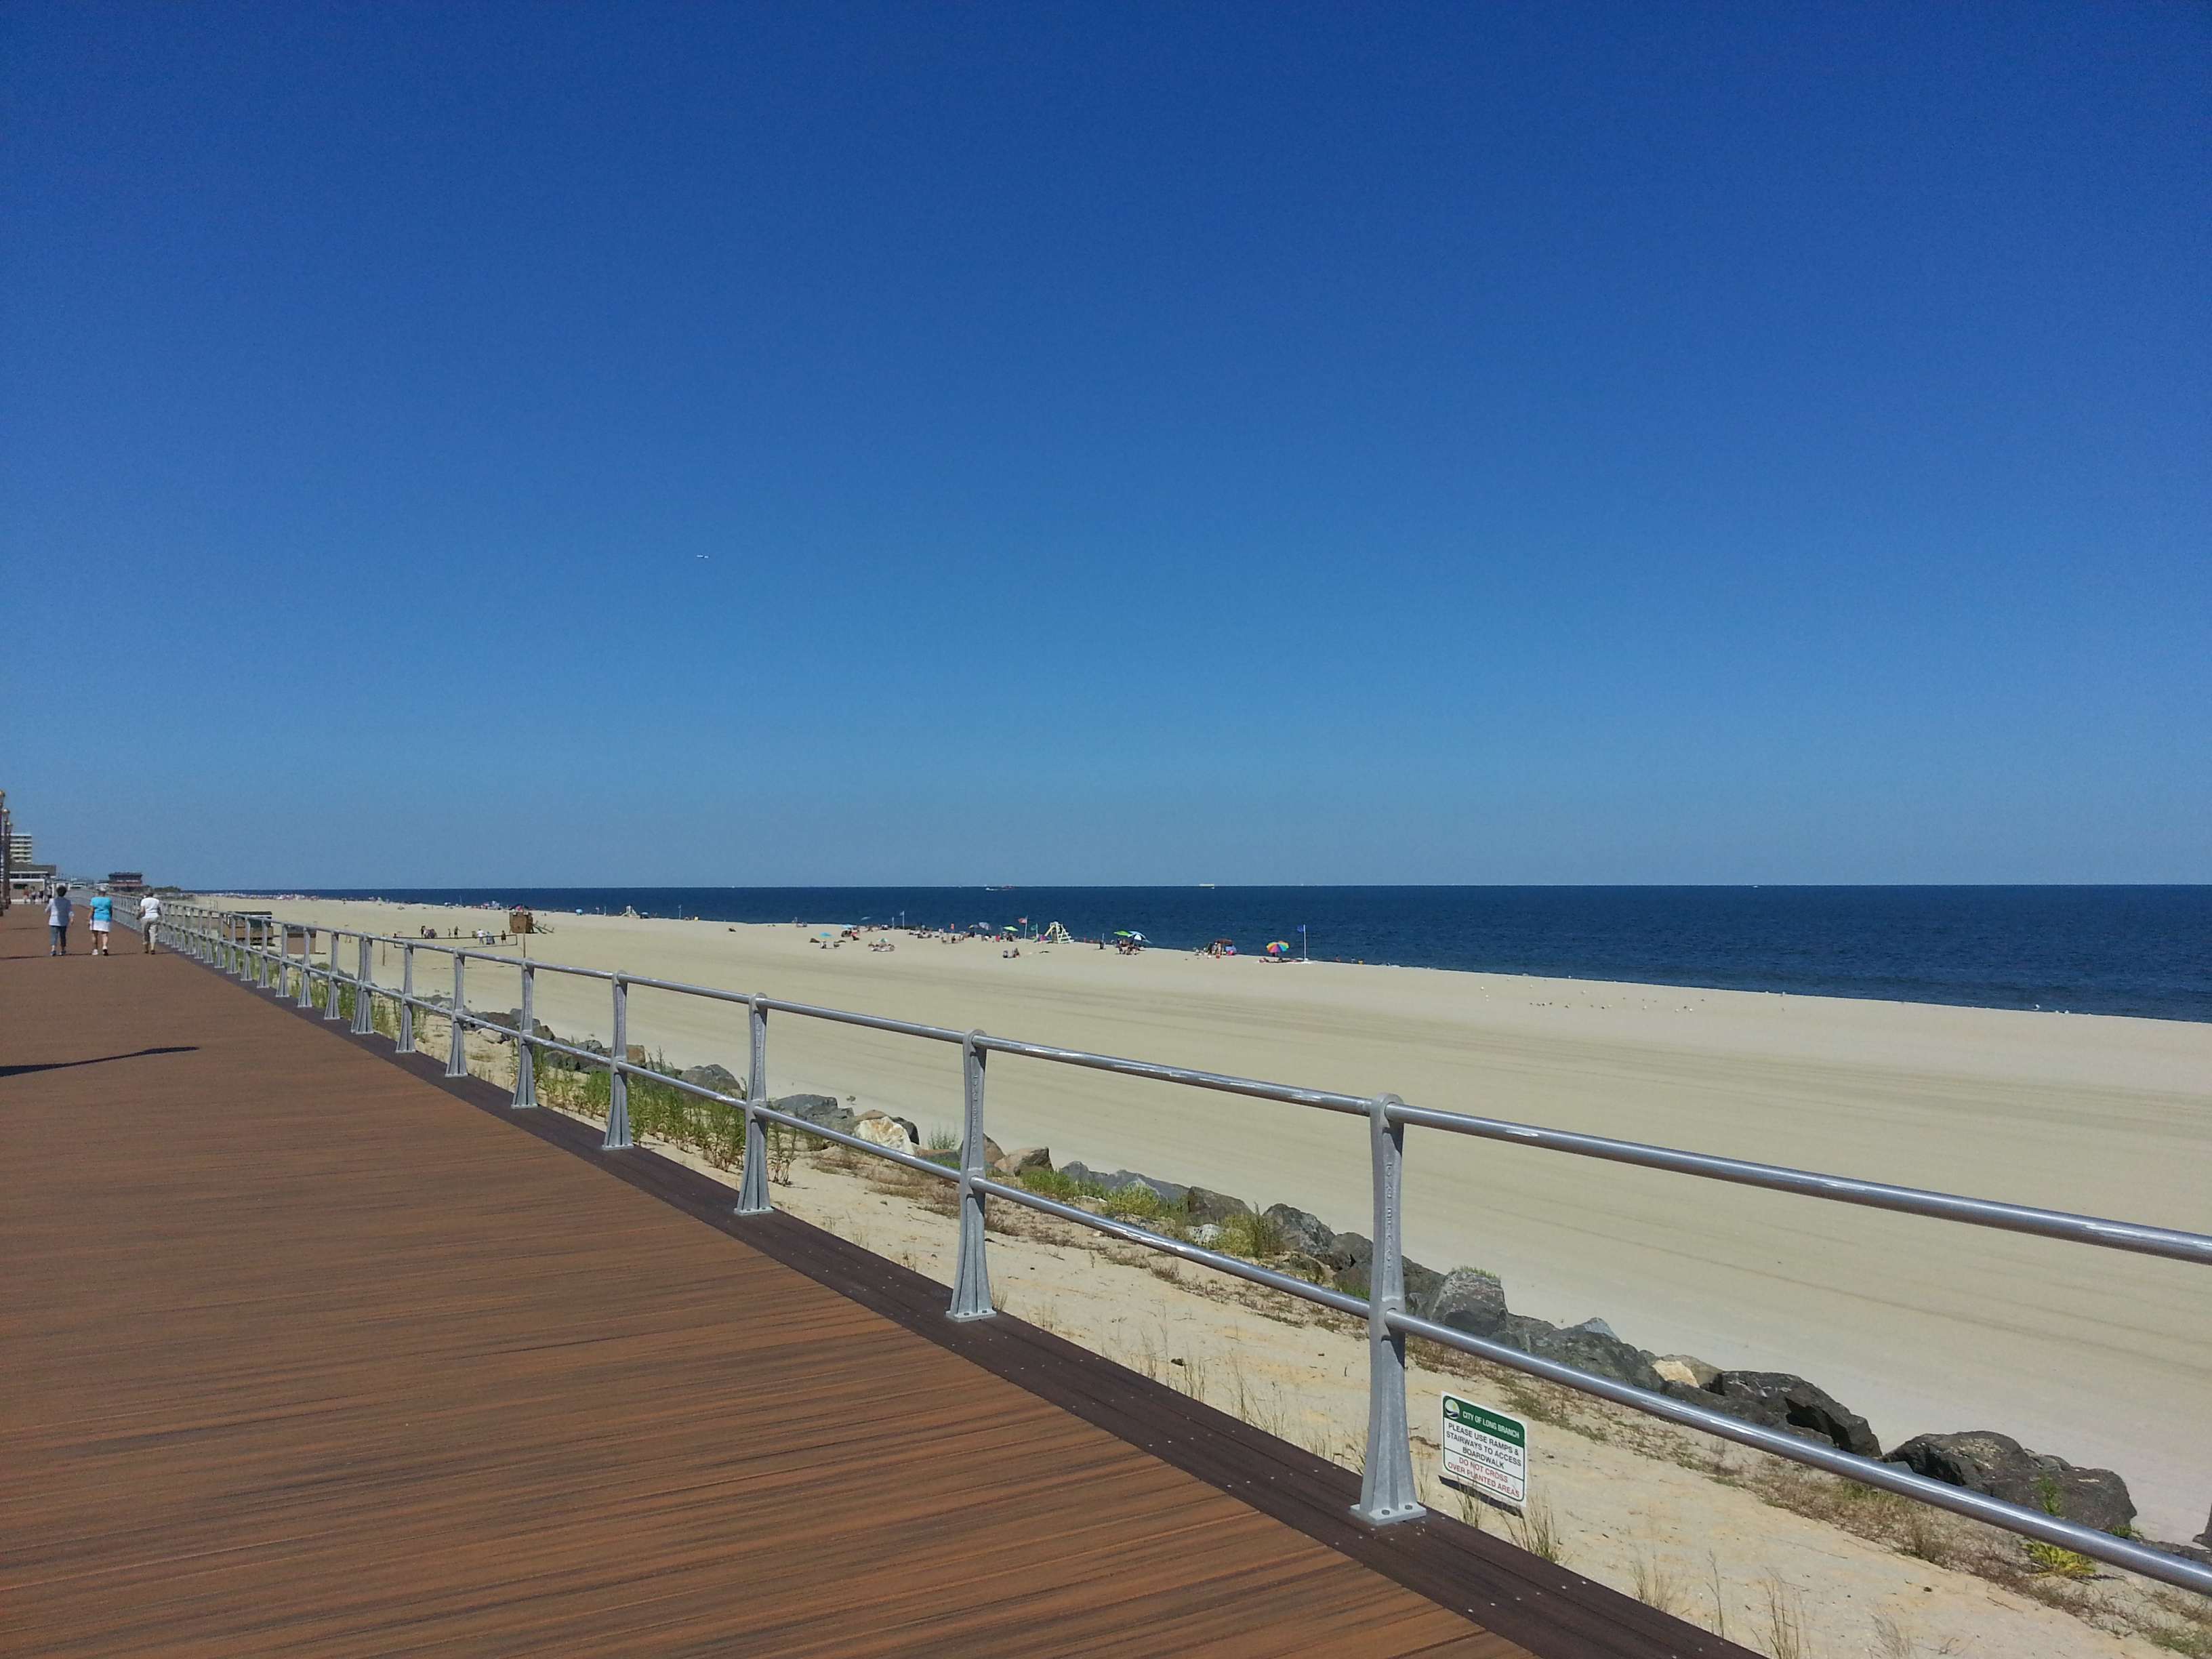 Directly behind the Anchorage is the the Long Branch boardwalk and beach, pictured here.